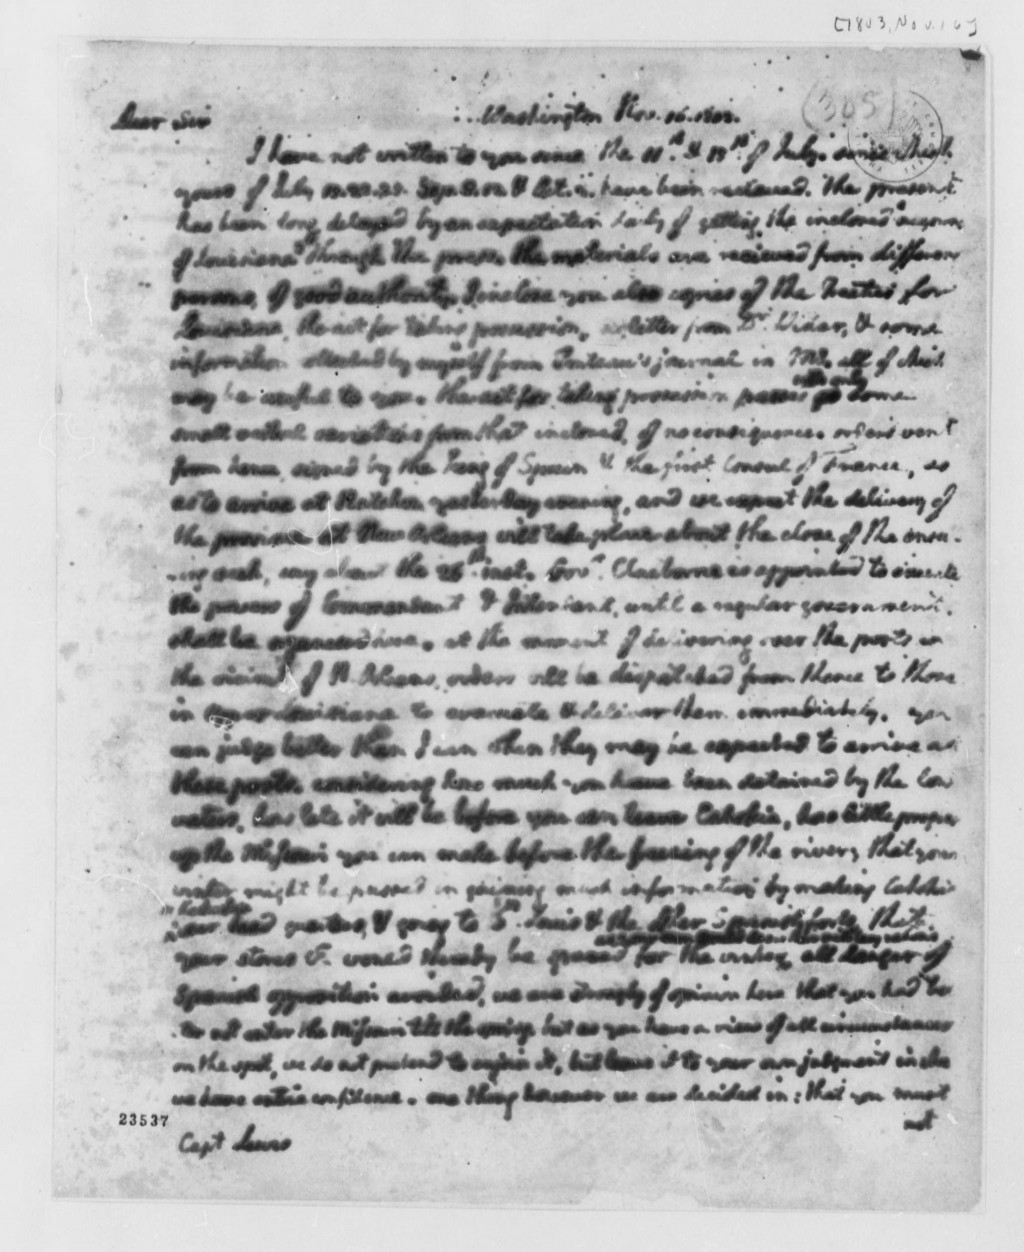 006 Essay Example Thomas Magnificent Jefferson Questions High School Sample Large